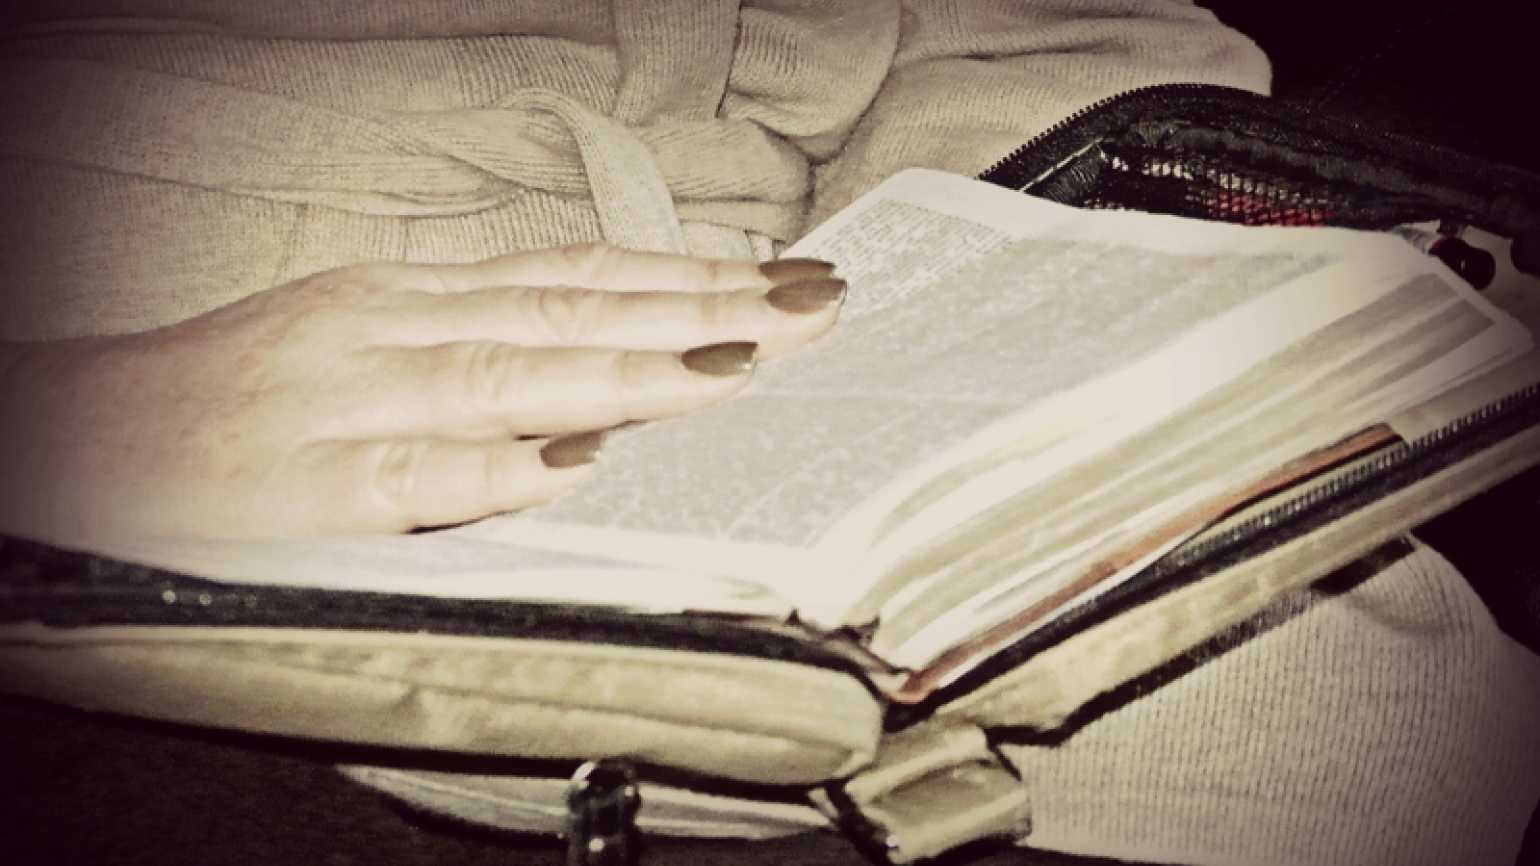 Outreach Ministries blogger Edie Melson reading her Bible